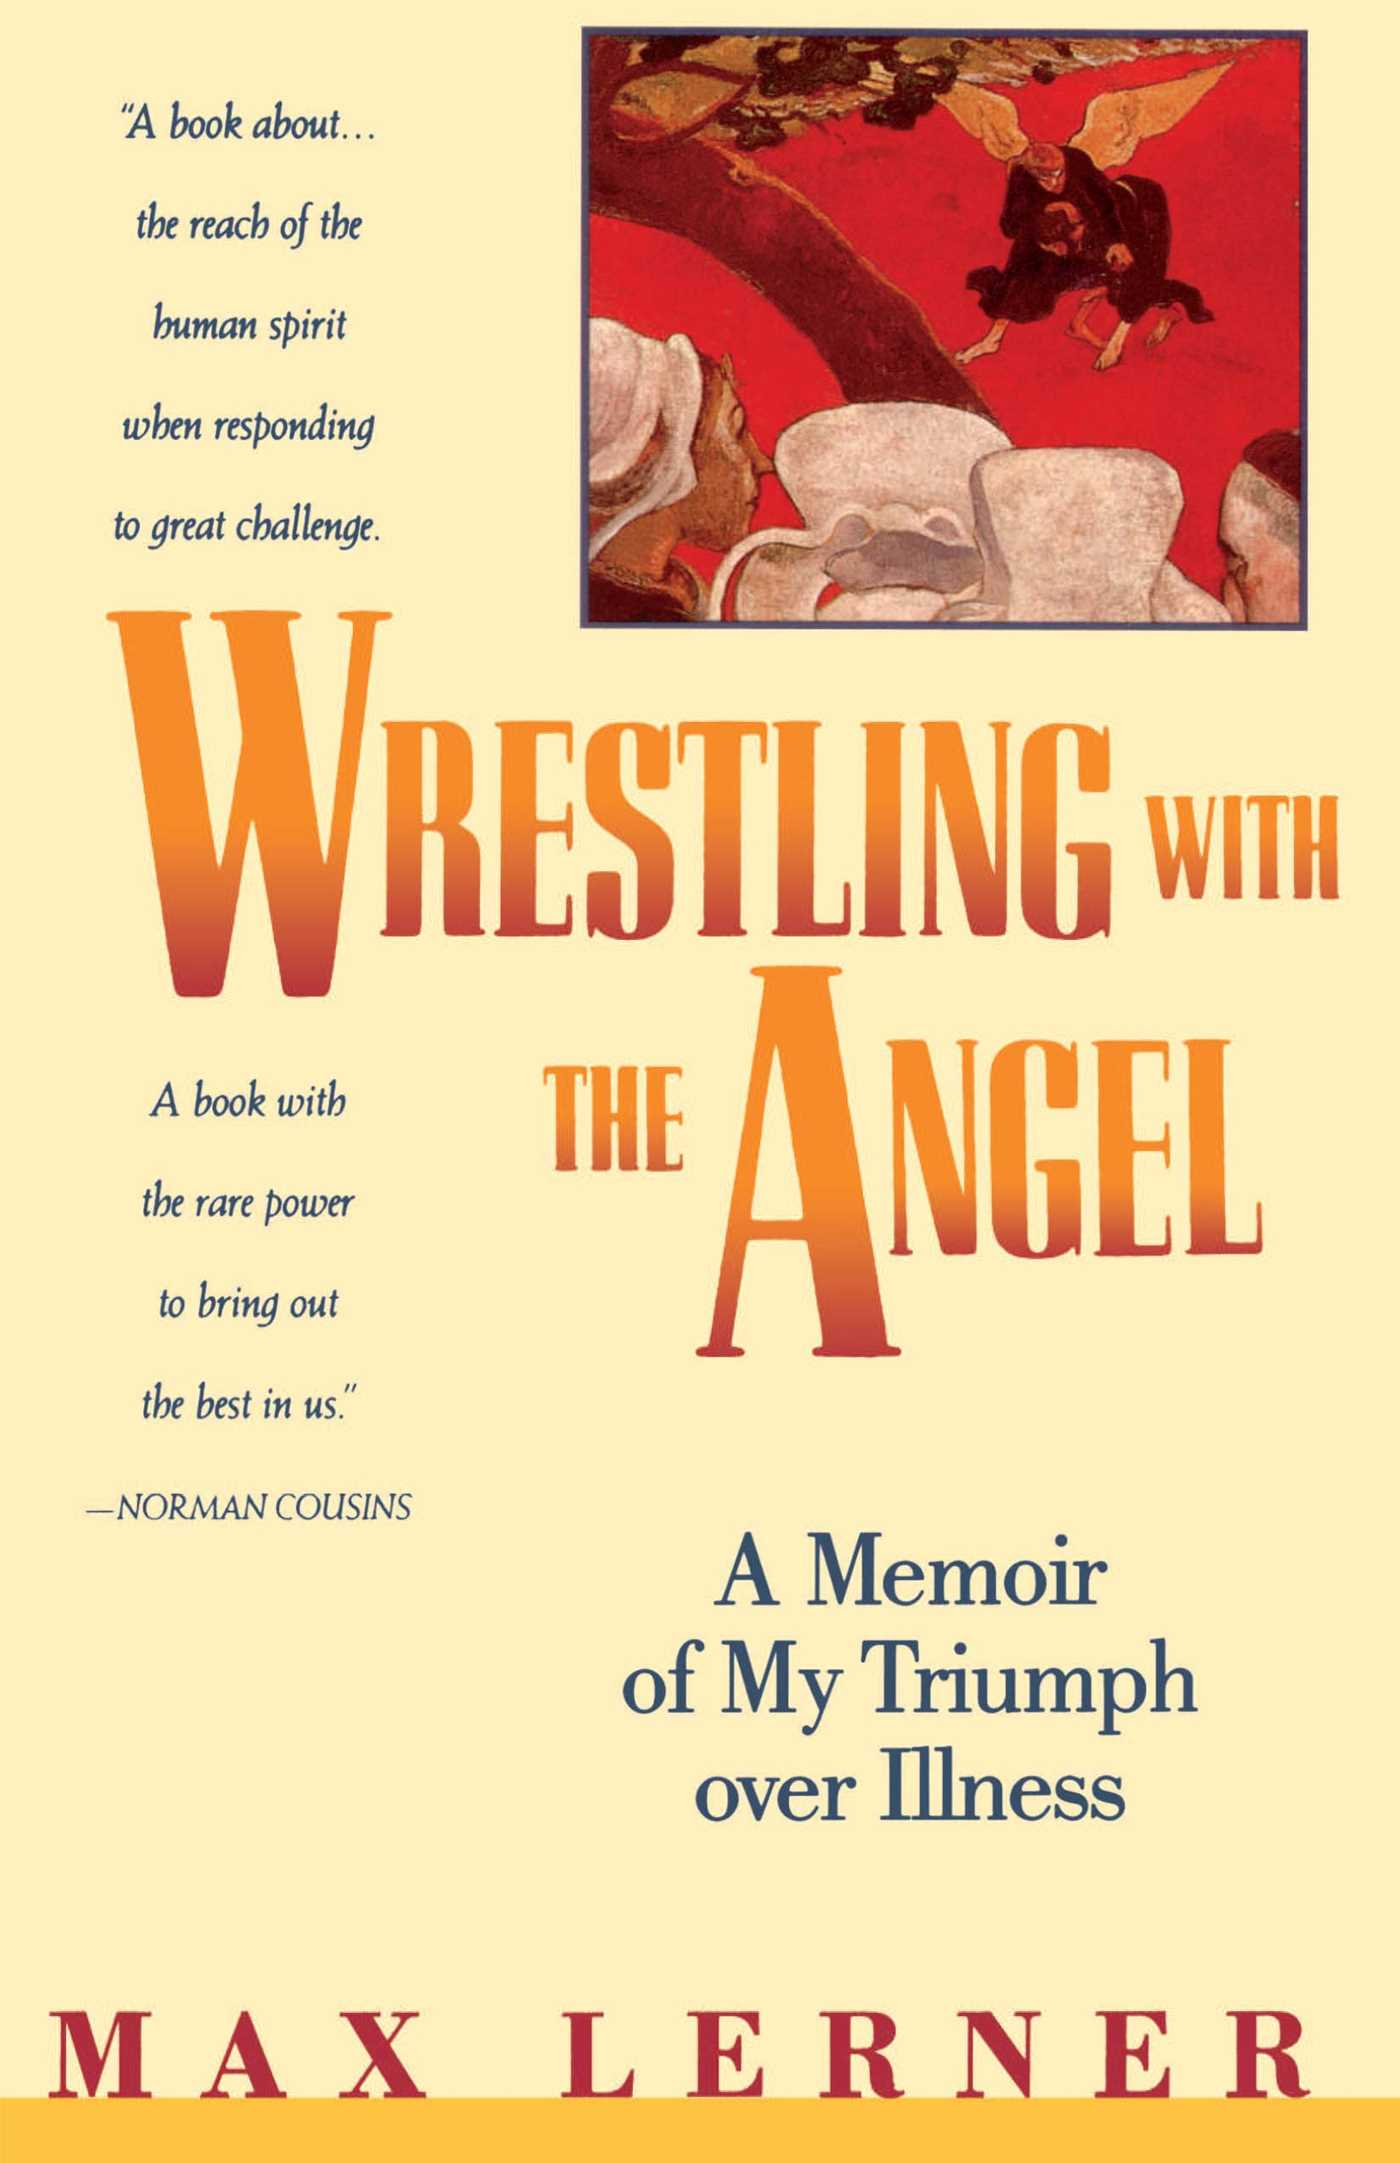 Wrestling-with-the-angel-a-memoir-of-my-triumph-over-illness-9780671740955_hr